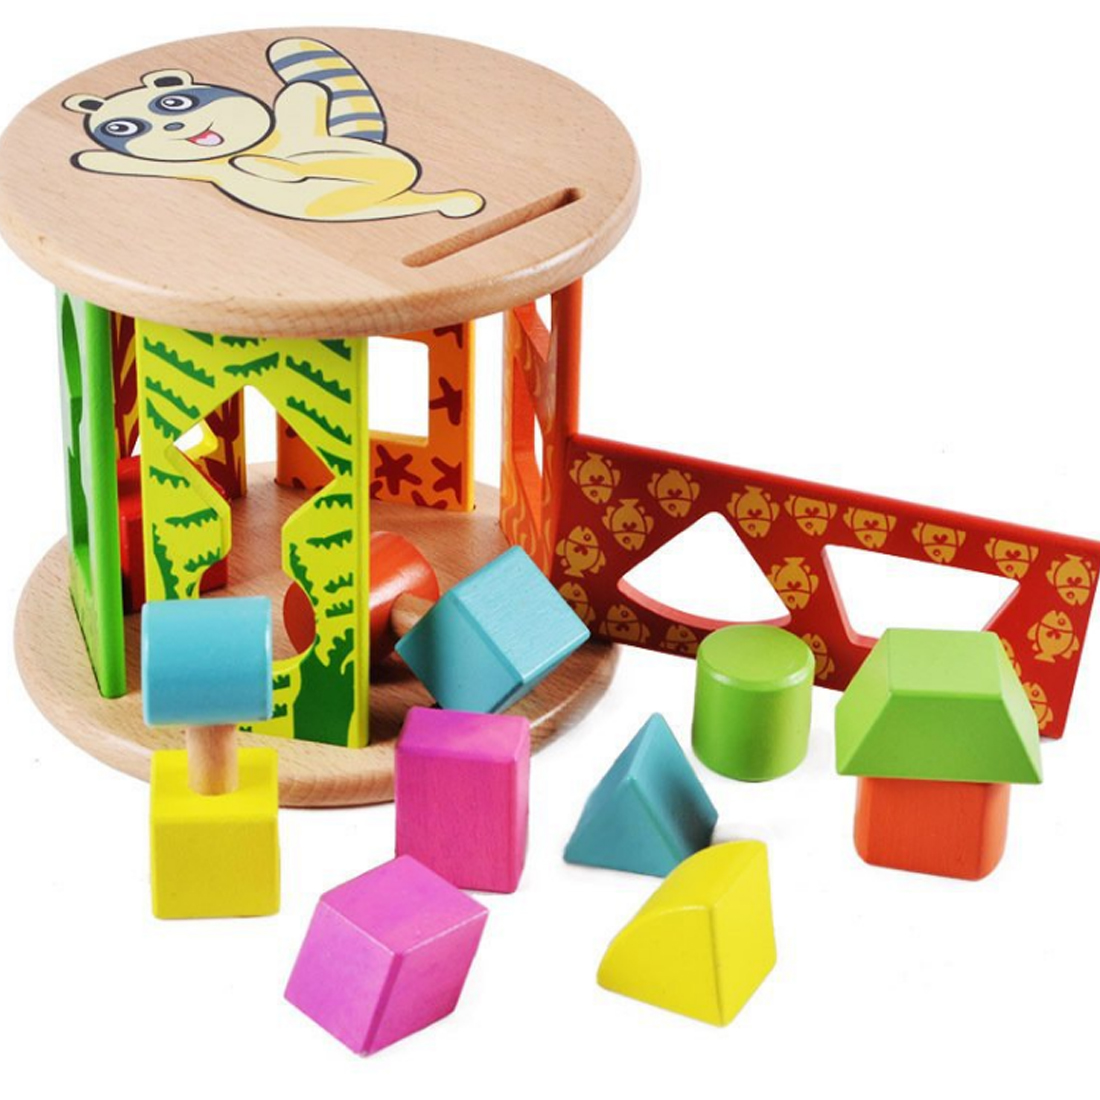 UTOYSLAND Children Wooden Shape Sorter Cylinder Shaped Blocks Early Educational Toys for Kids Gift - Colorful 13 holes wooden toys intelligence box for shape sorter cognitive and matching building sorority eductional toys for children